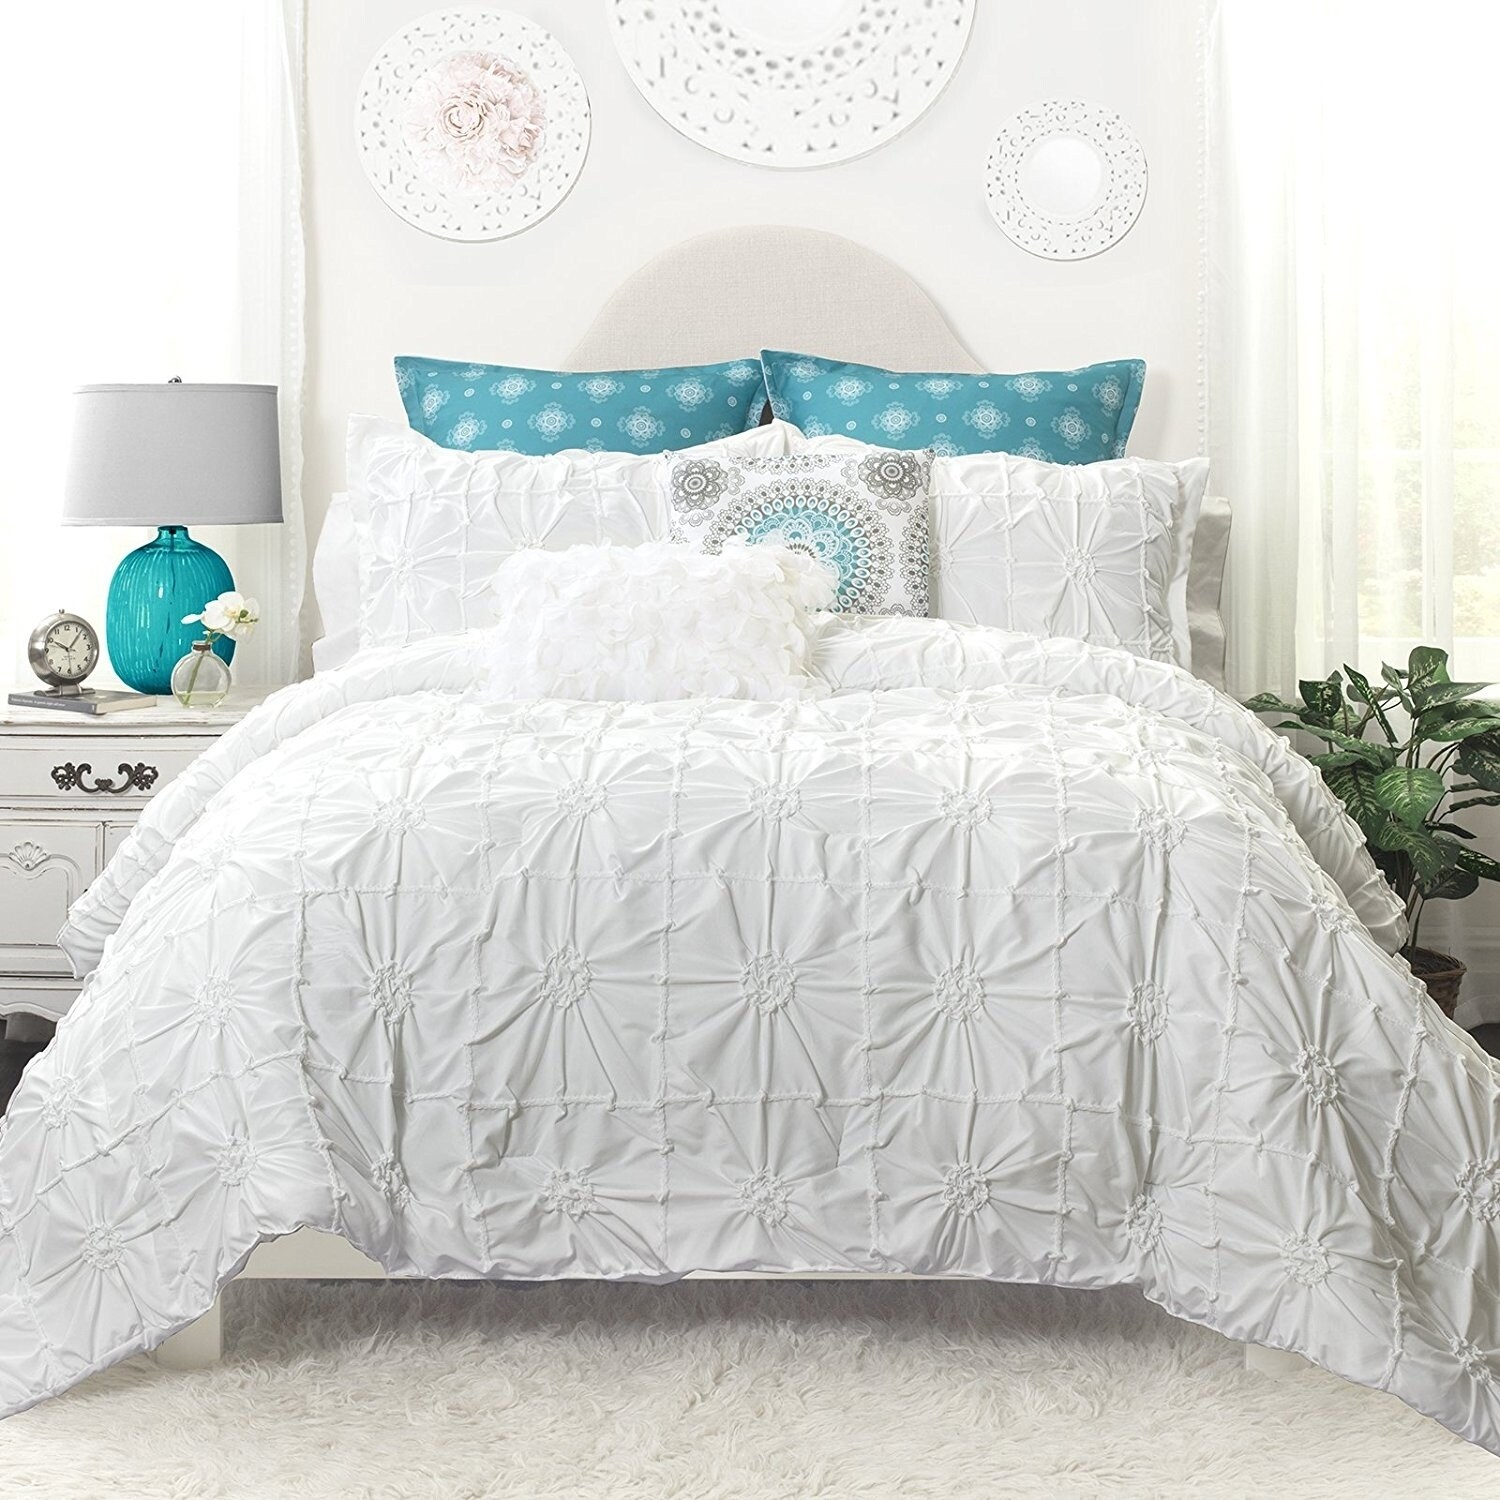 pinched double comforter luxury set pleated pinch oxford pleat needle soft gray